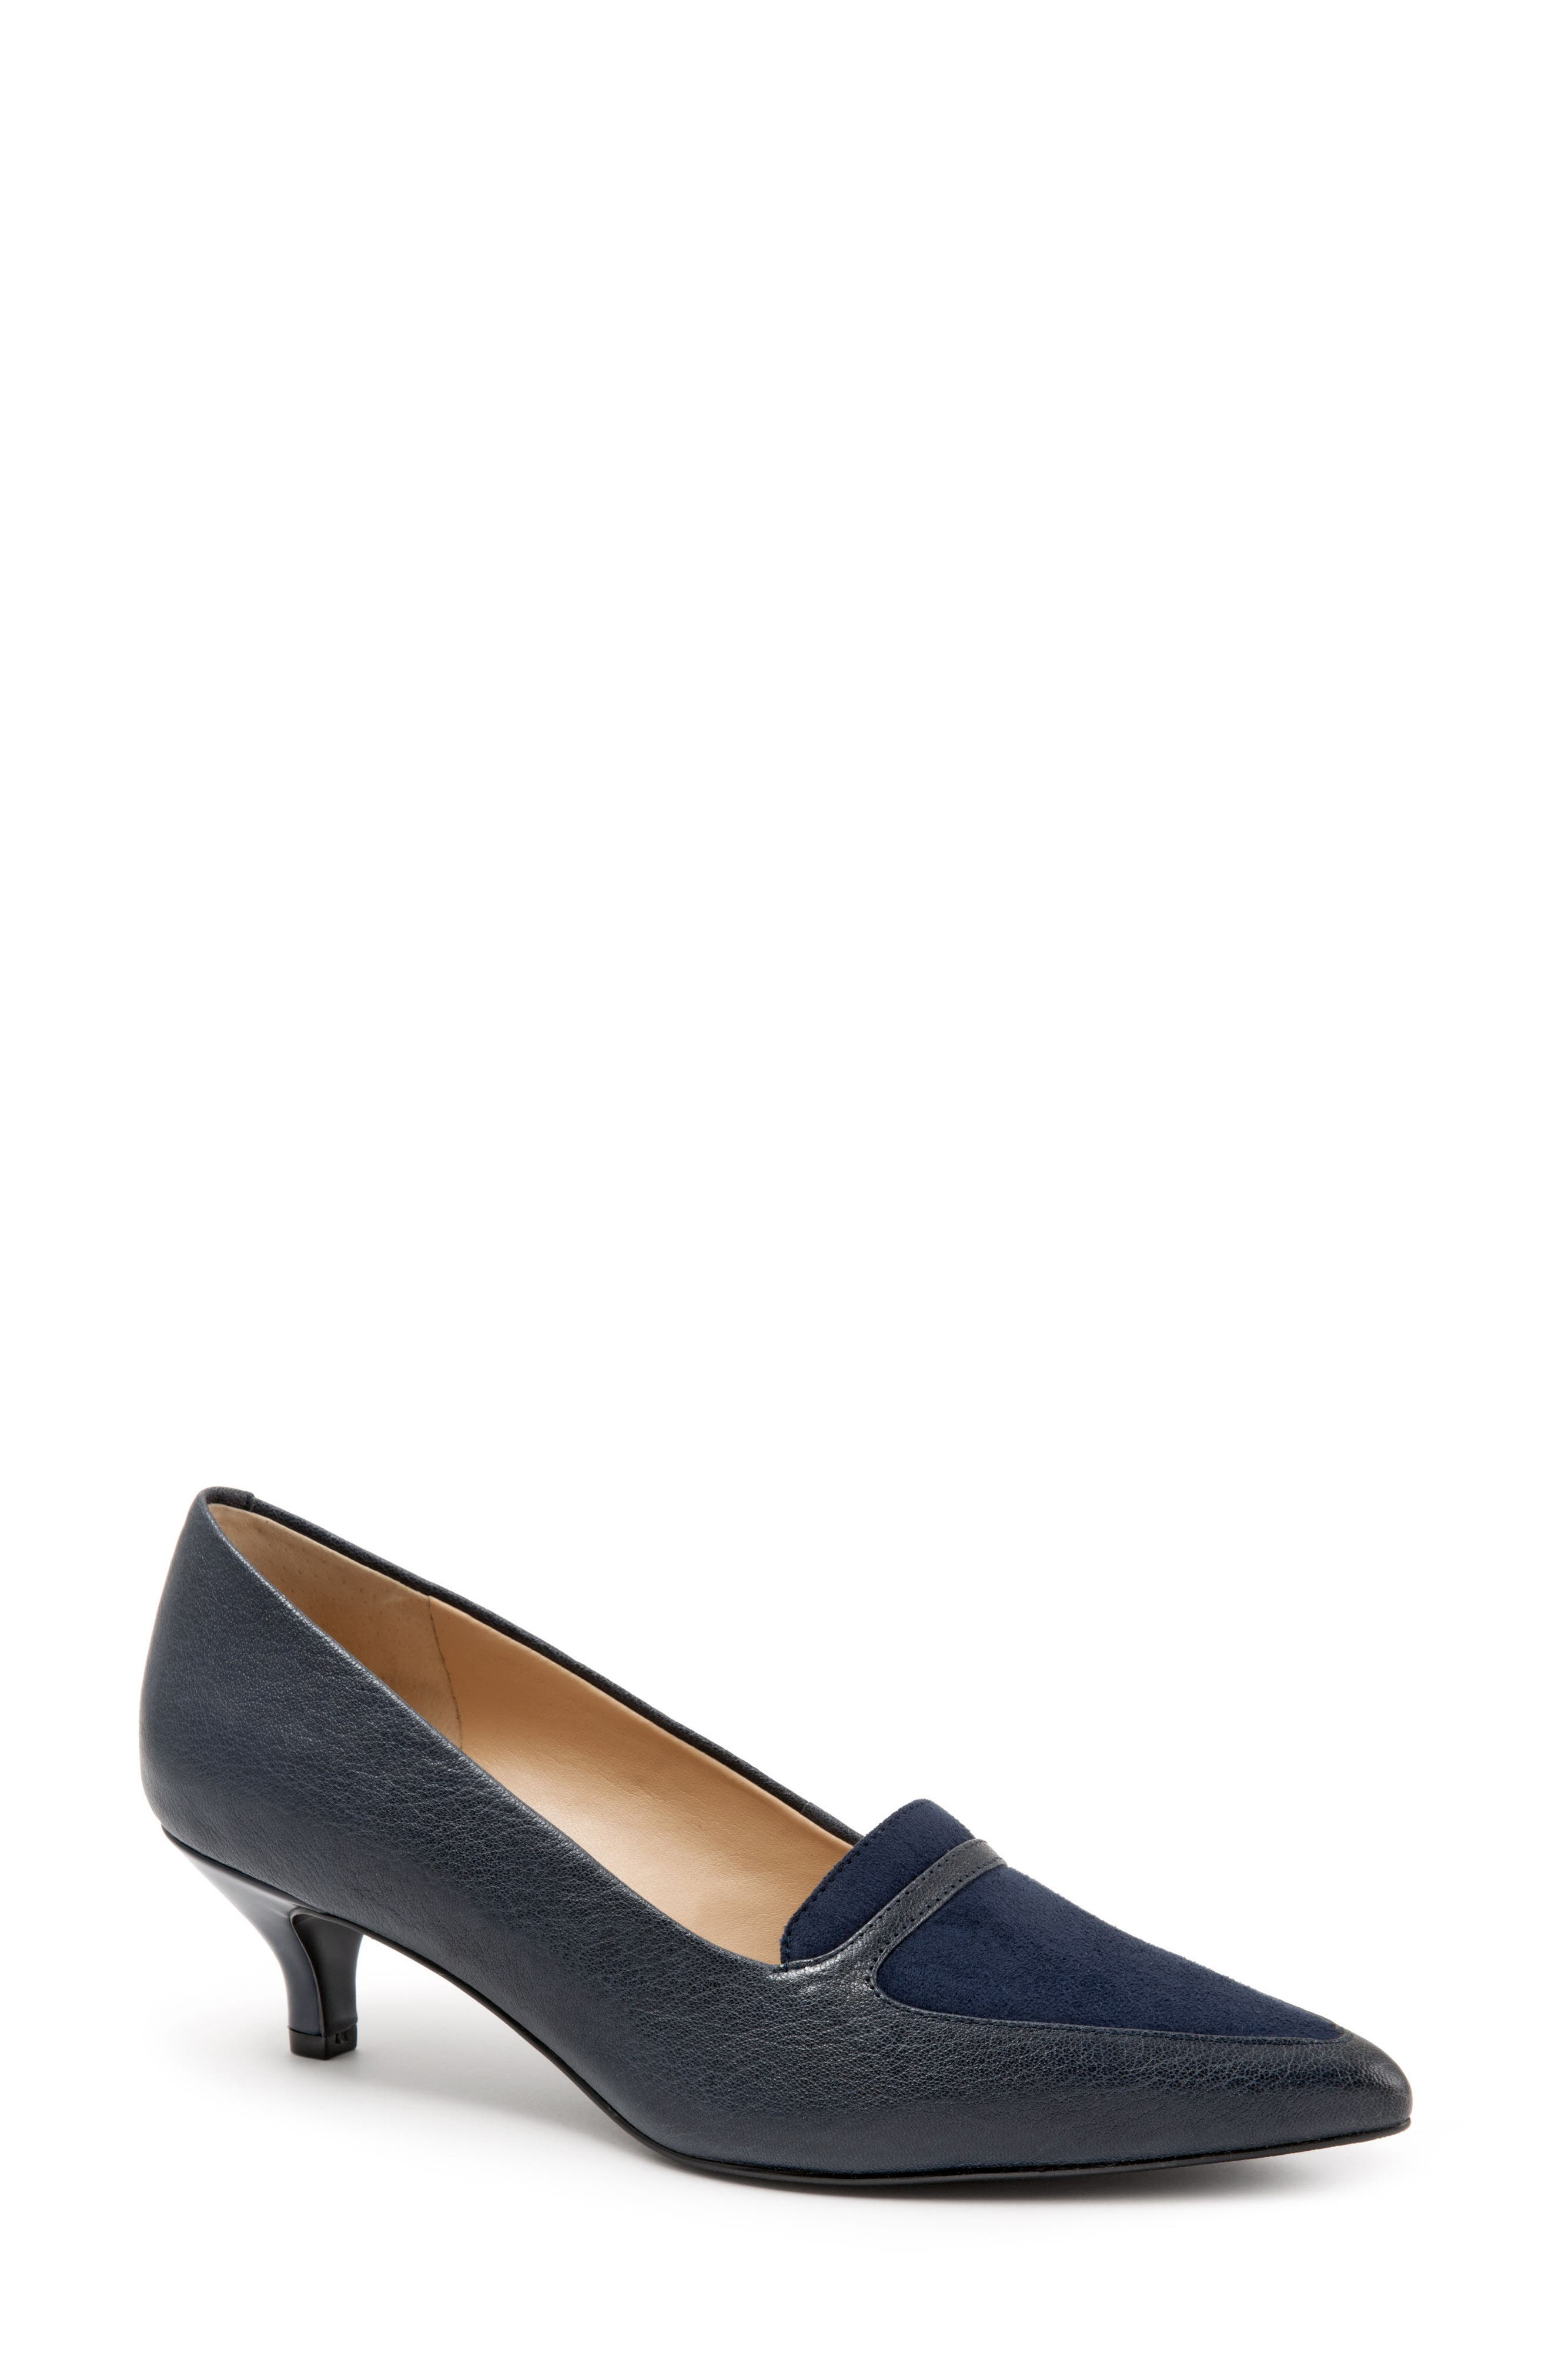 Alternate Image 1 Selected - Trotters 'Piper' Pointy Toe Pump (Women)